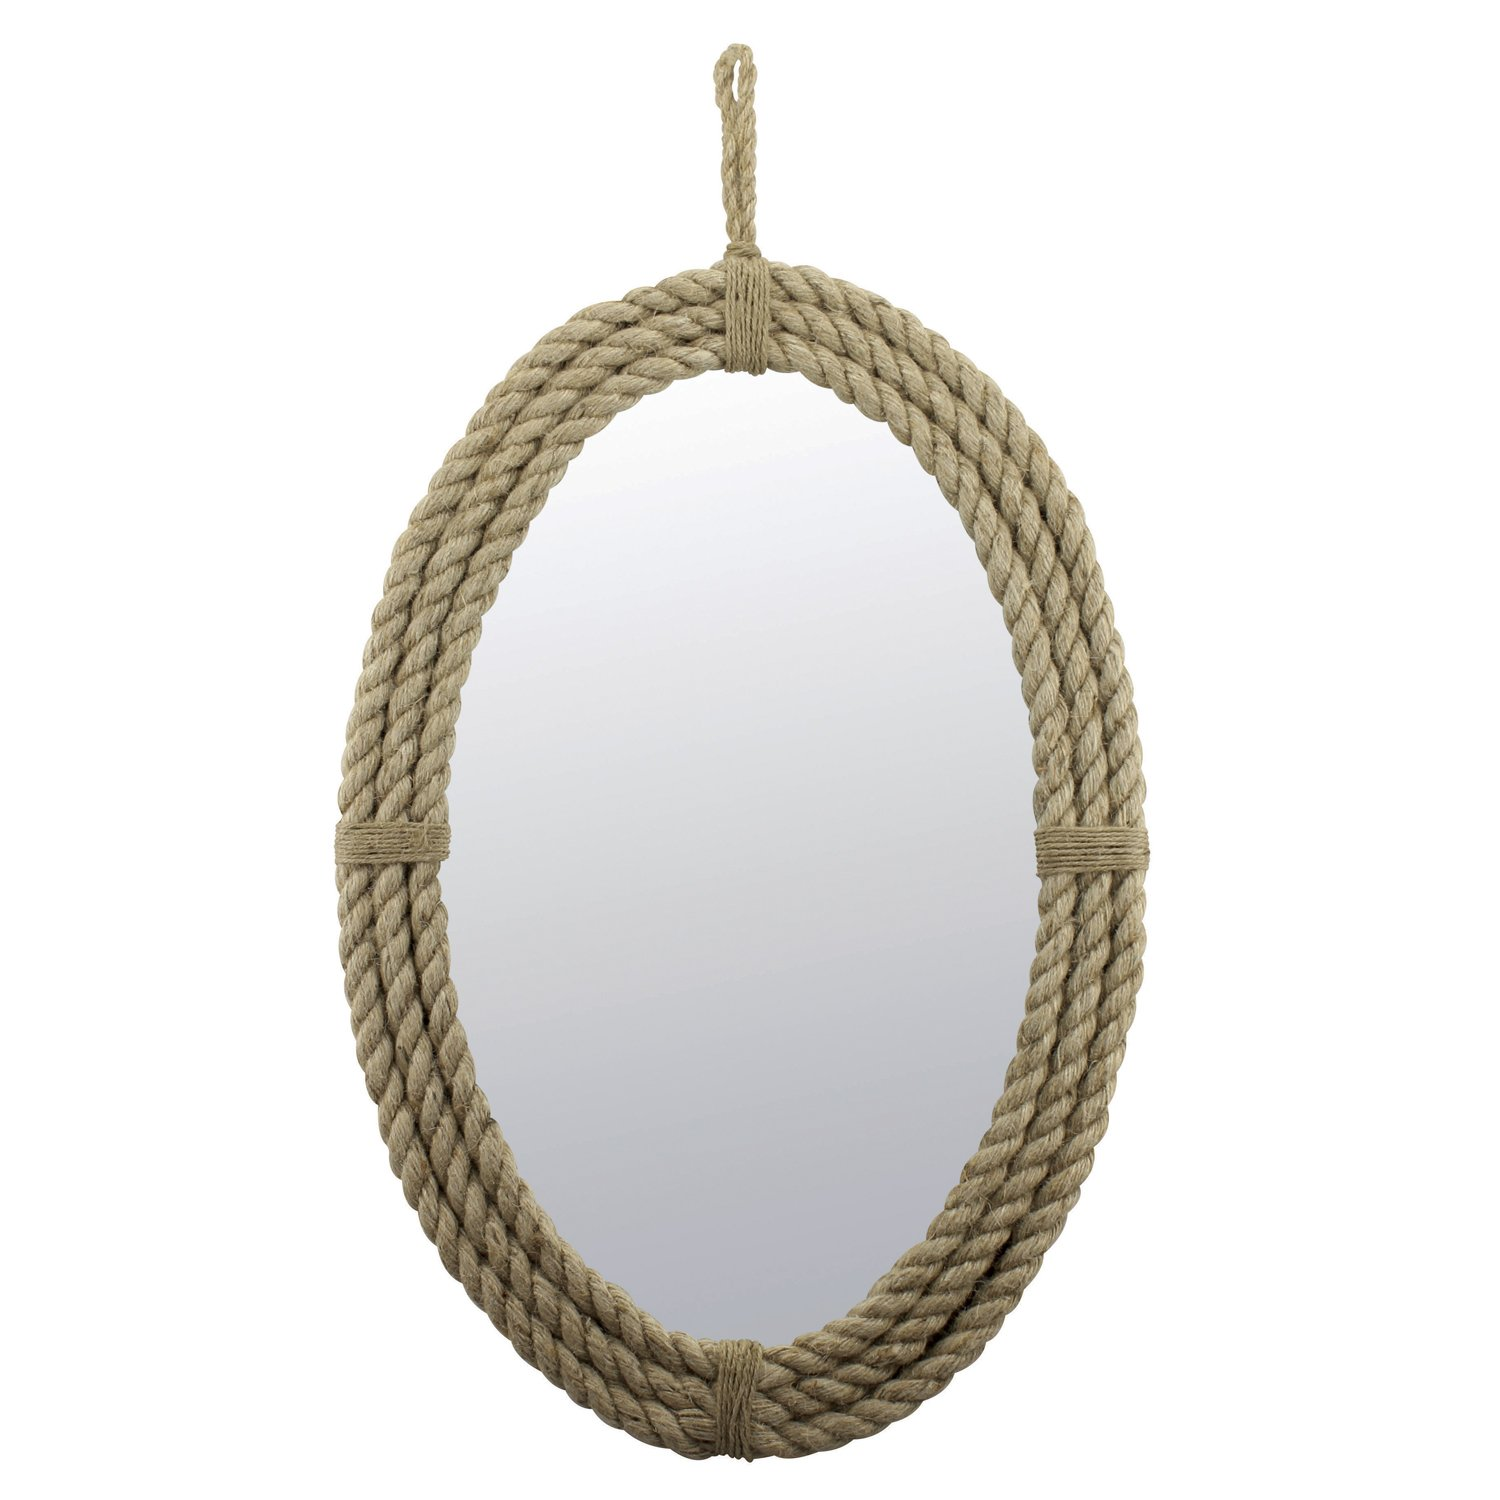 Stonebriar Decorative Oval Rope Mirror with Hanging Loop, Unique Wall Décor